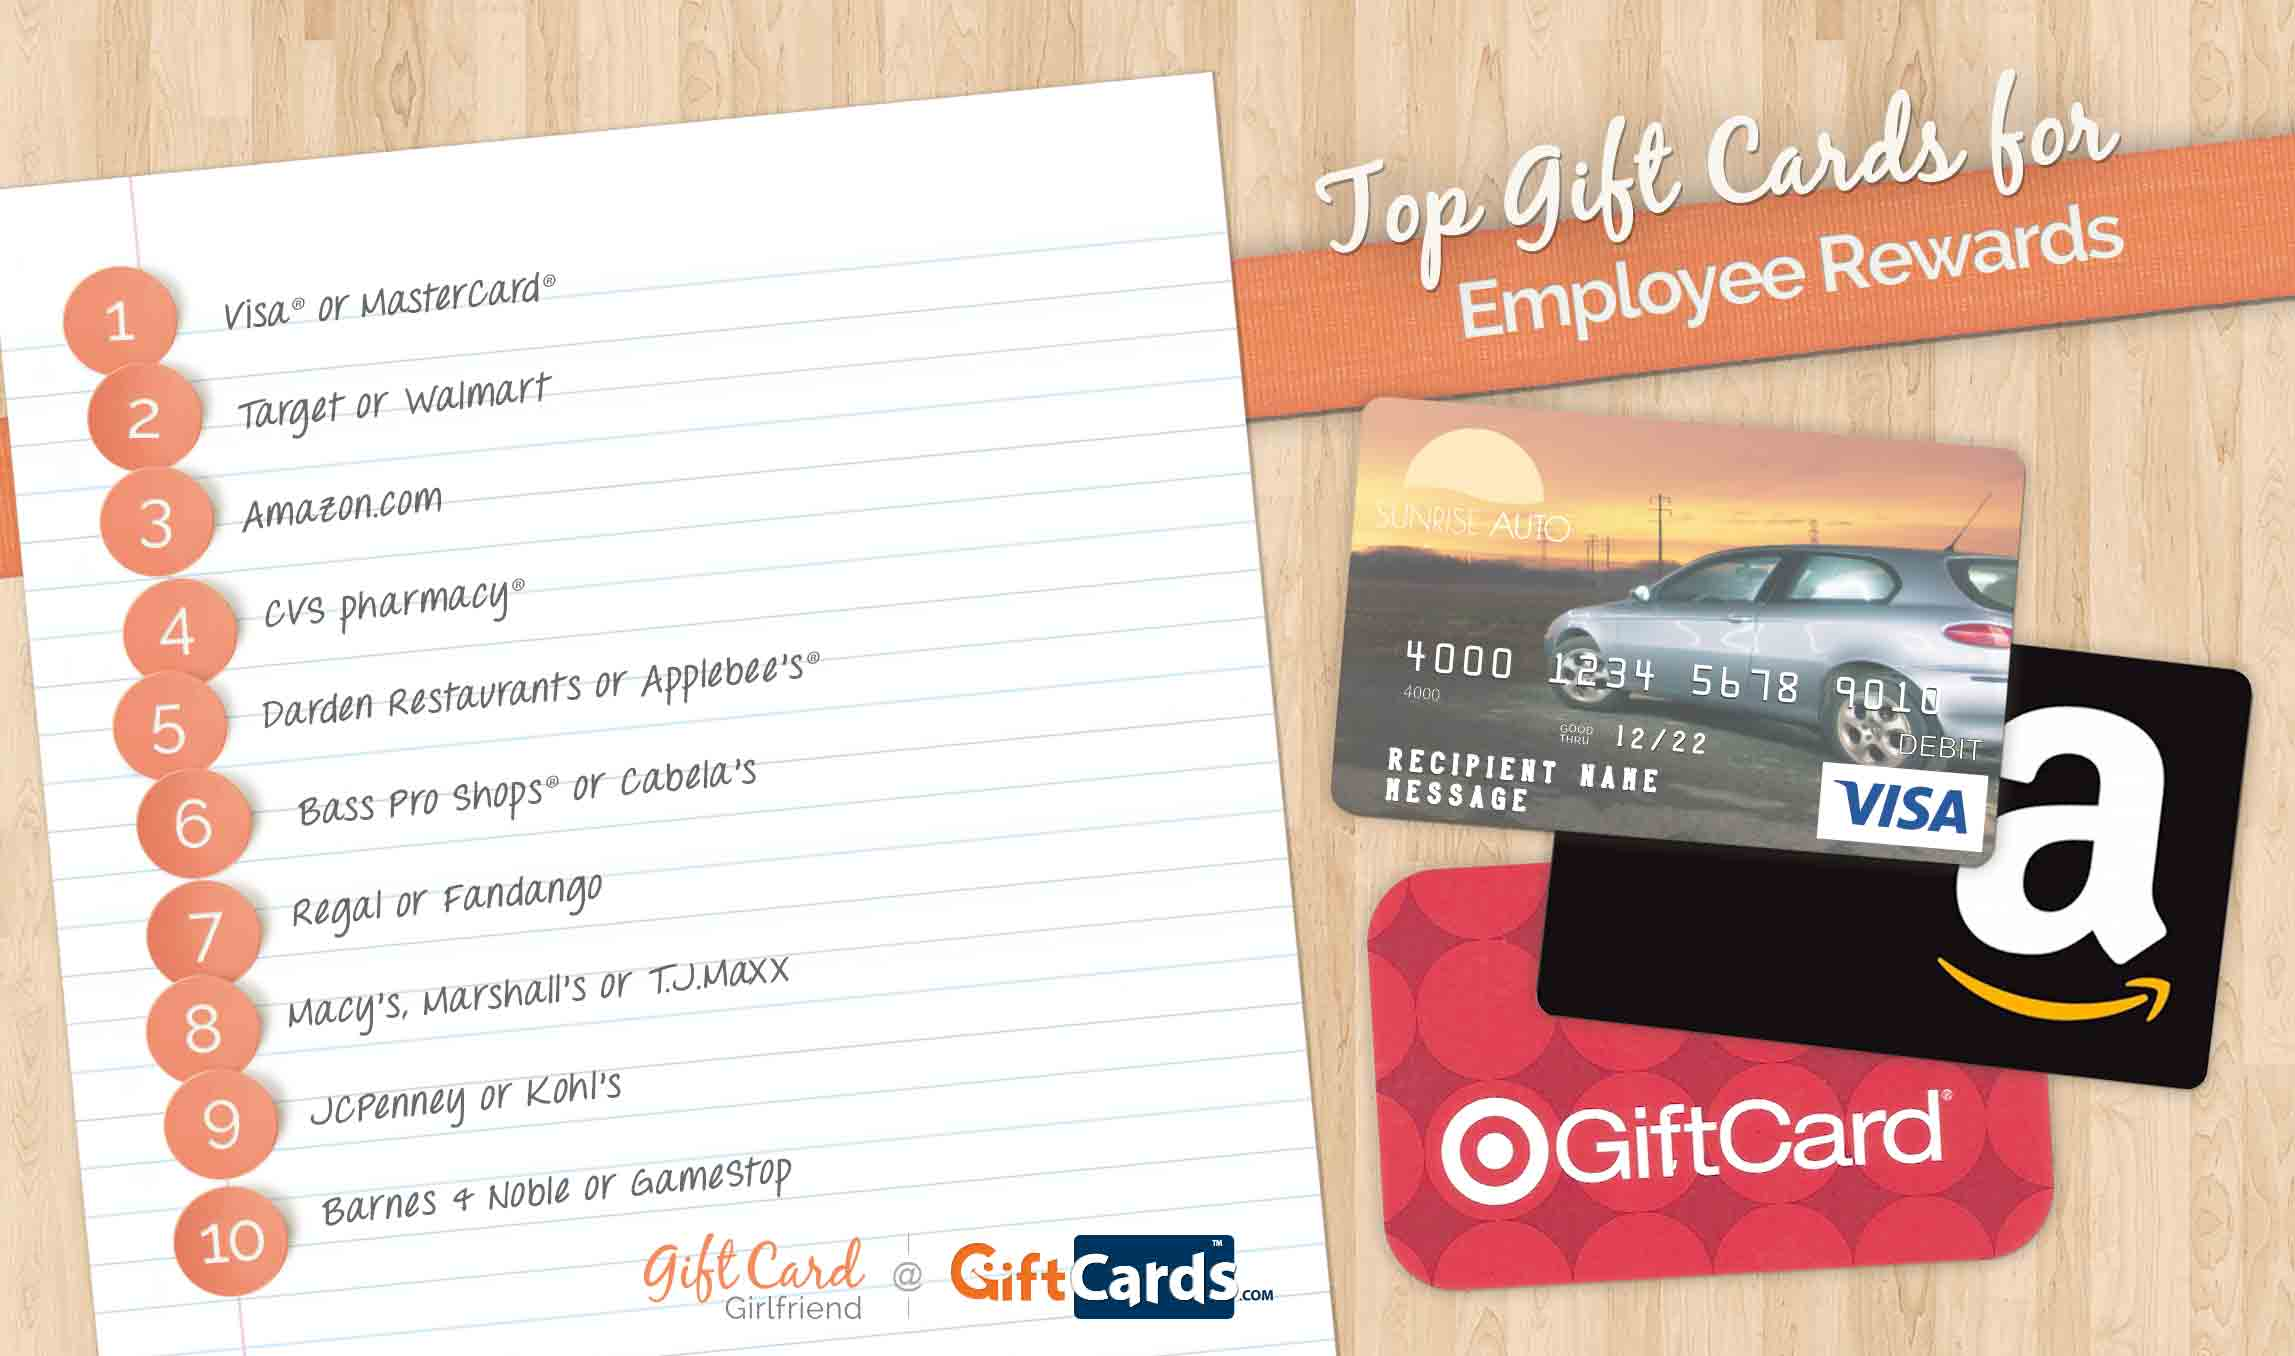 List of best gift cards for employee rewards